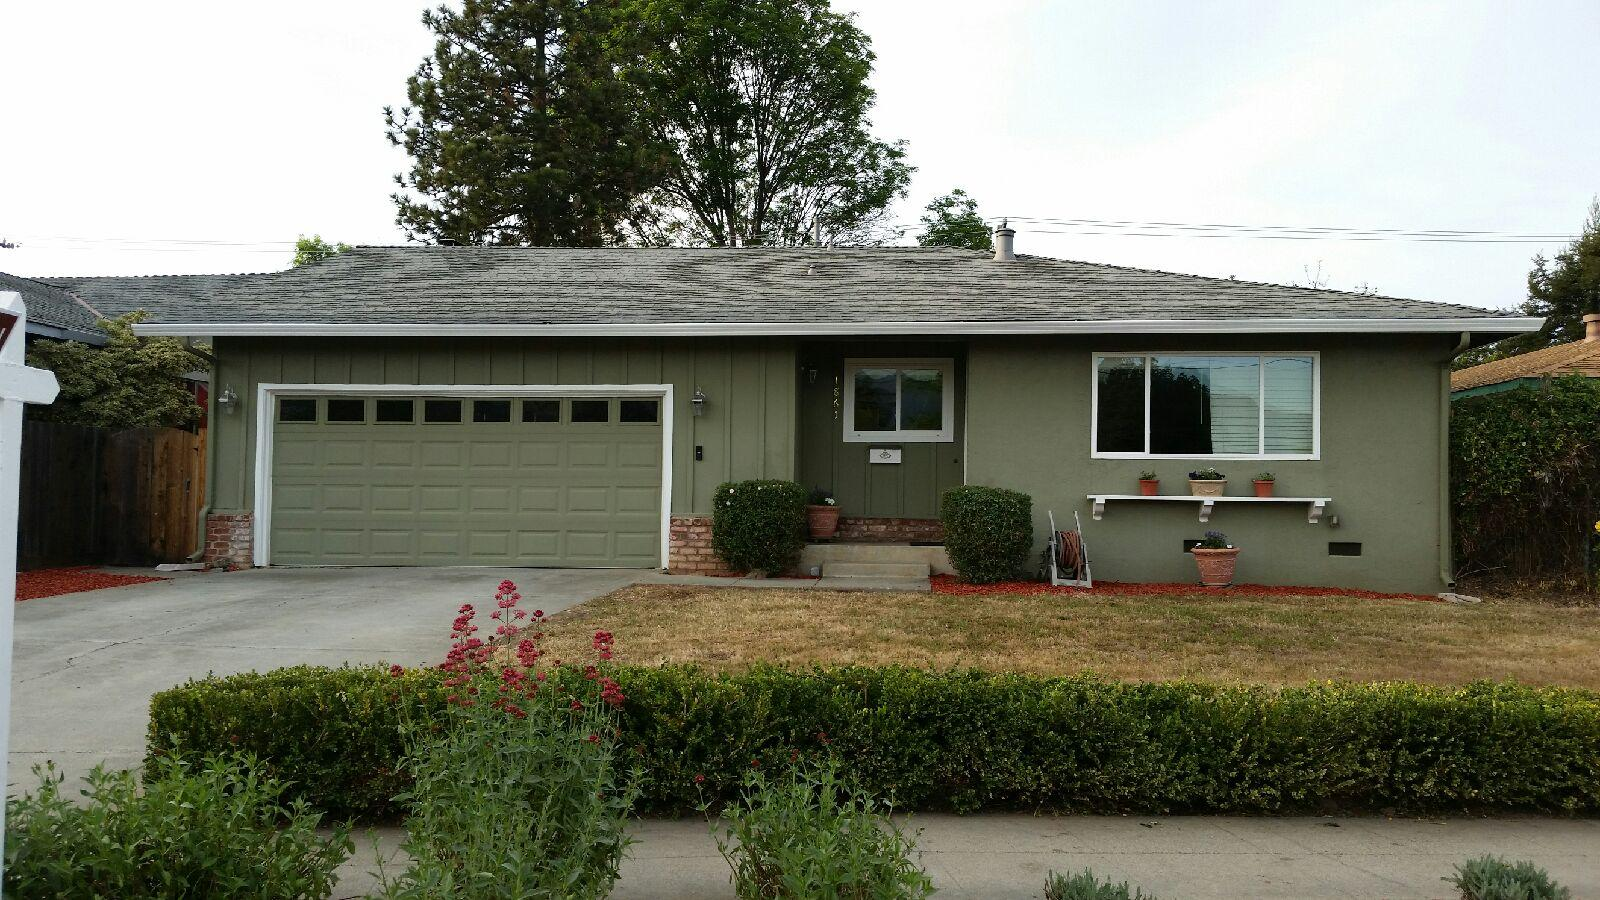 Silicon Valley Home - 1861 Nelson Way, San Jose